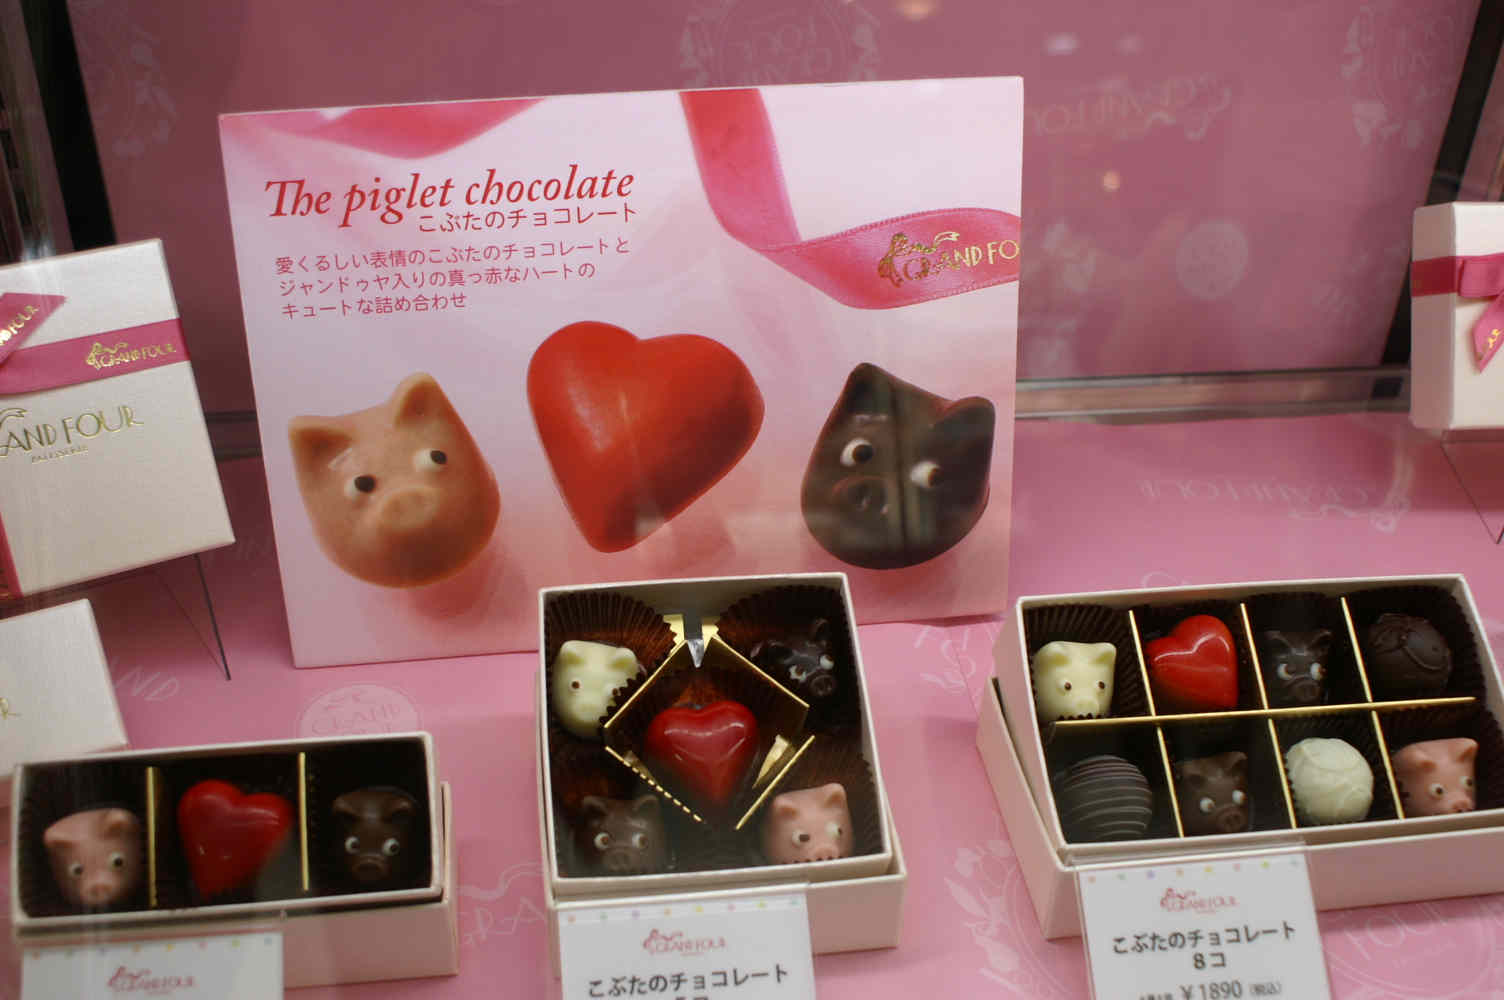 Chocolate For Sweet St Valentine S Day At Printtemps Ginza 2